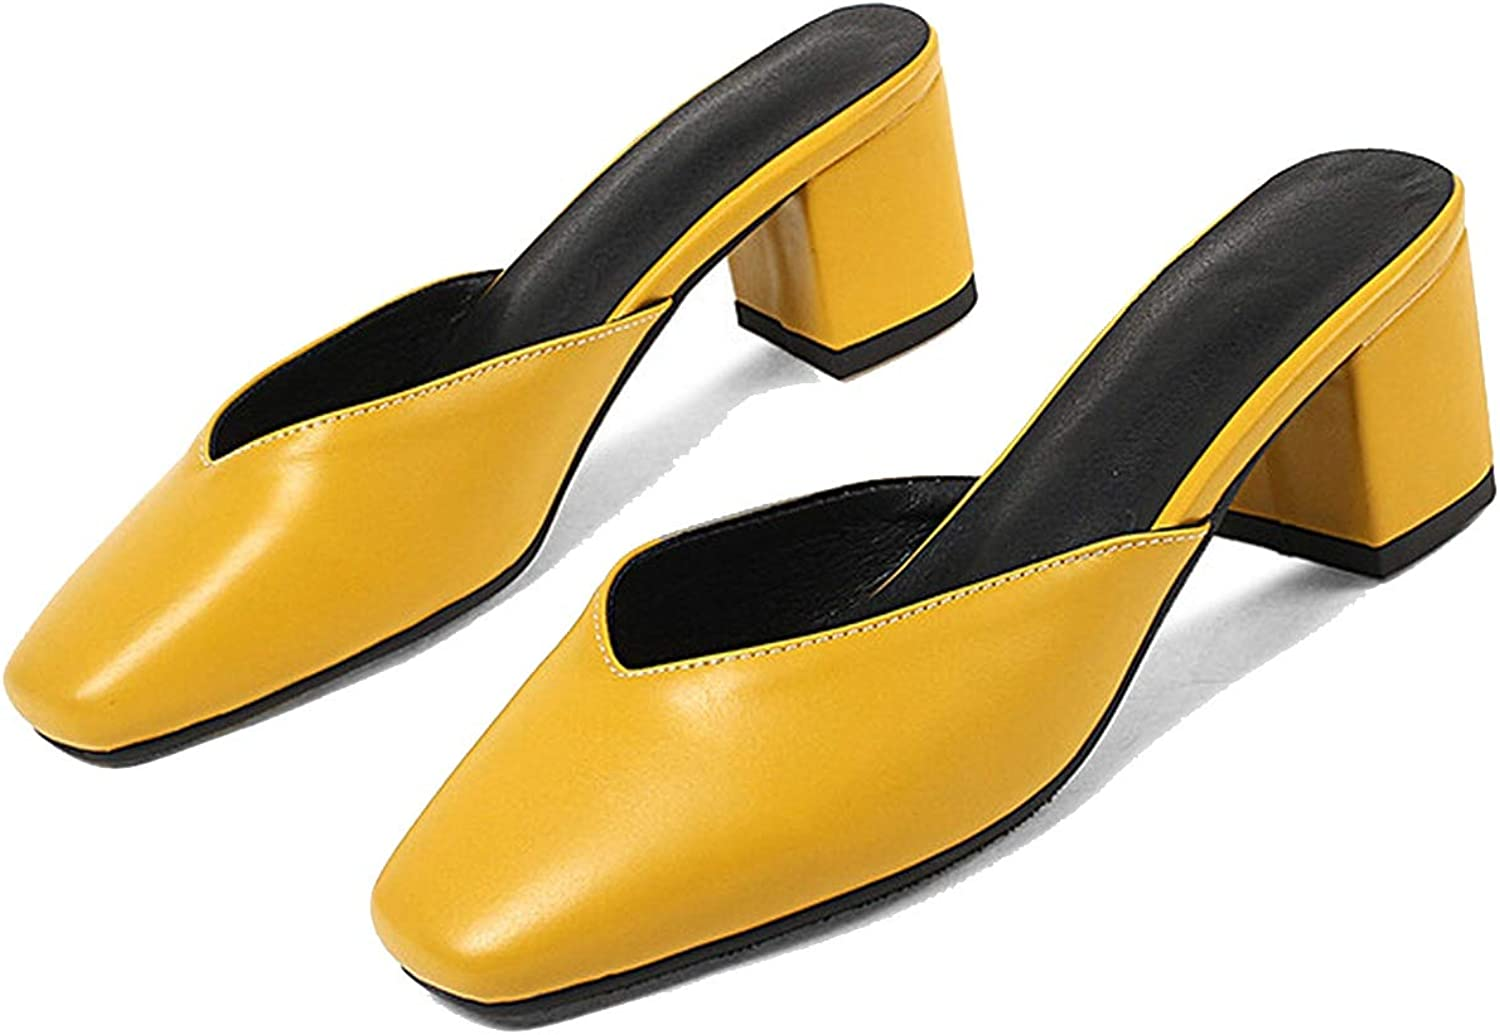 Women Pumps Solid colors Summer shoes Slip on Square high Heels shoes Female Casual Mules shoes Yellow,12